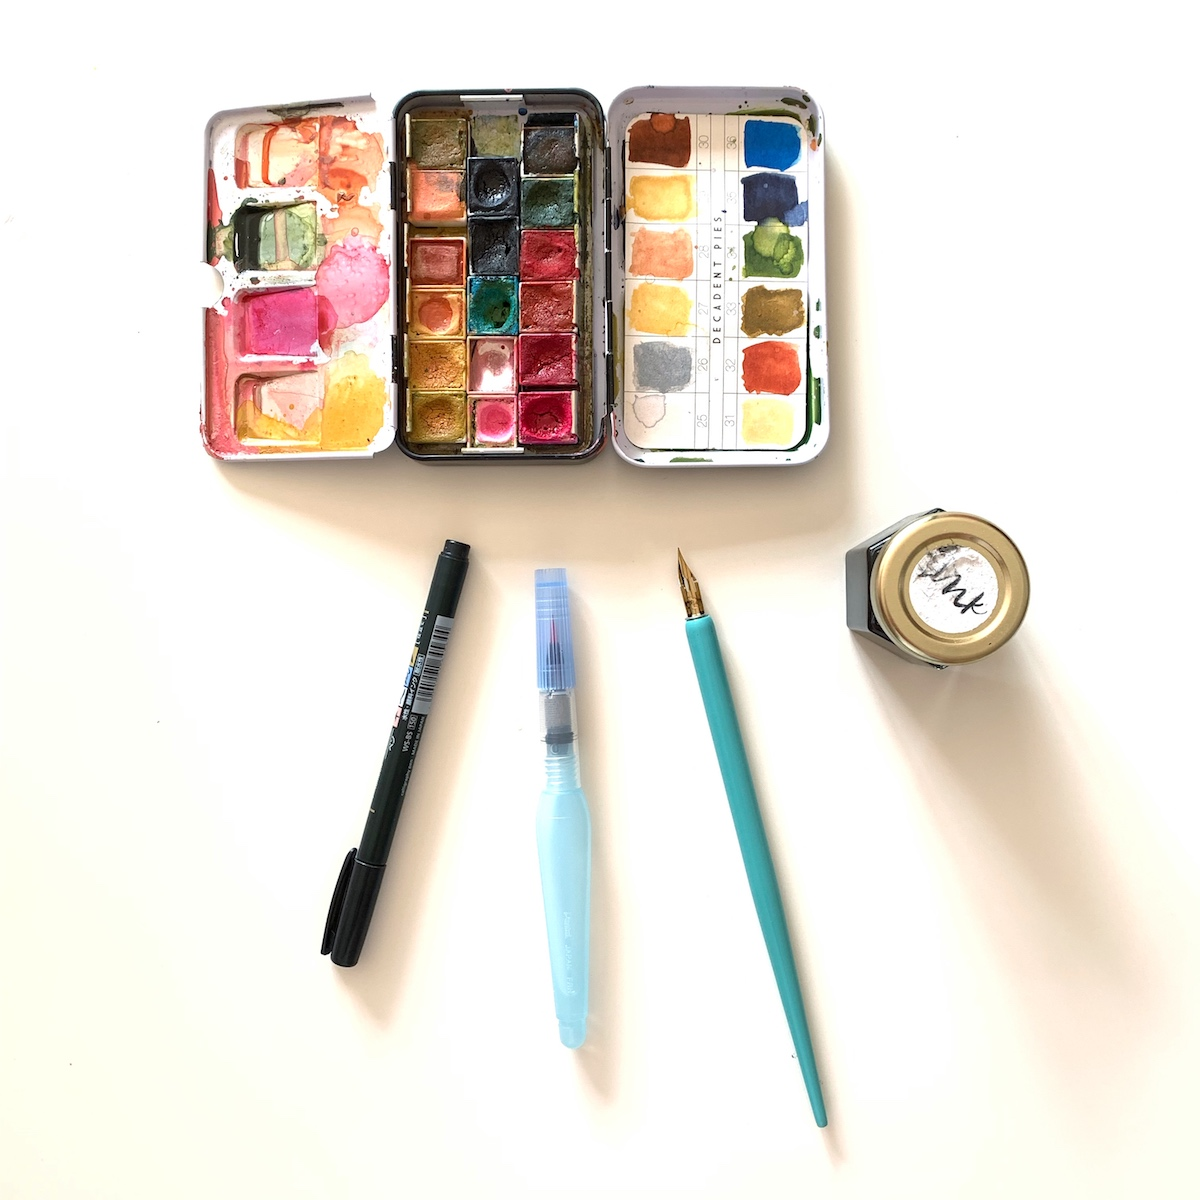 TIP 5 Have a simple set of supplies that are portable and uncomplicated. Keep it simple!